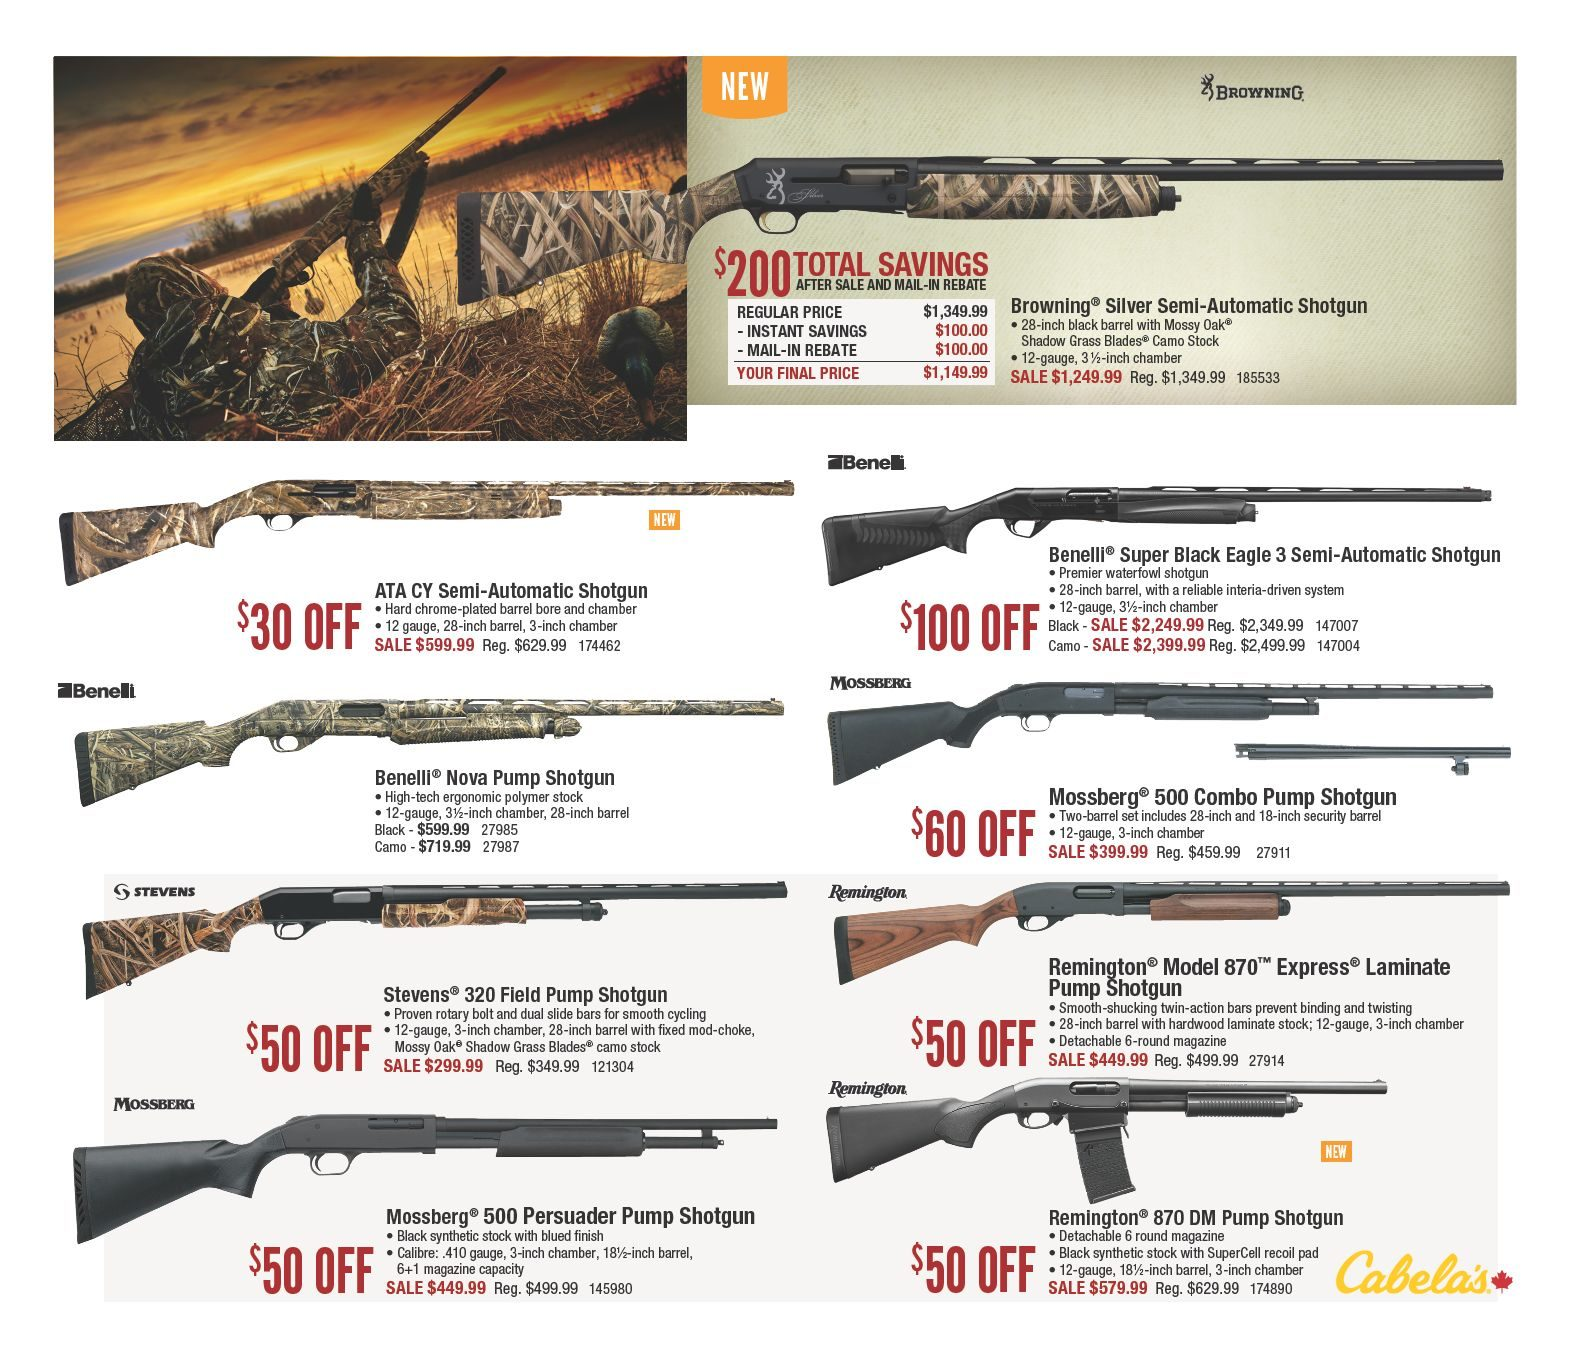 Cabelas Weekly Flyer - Fall 2018 Hunting Classic - Aug 10